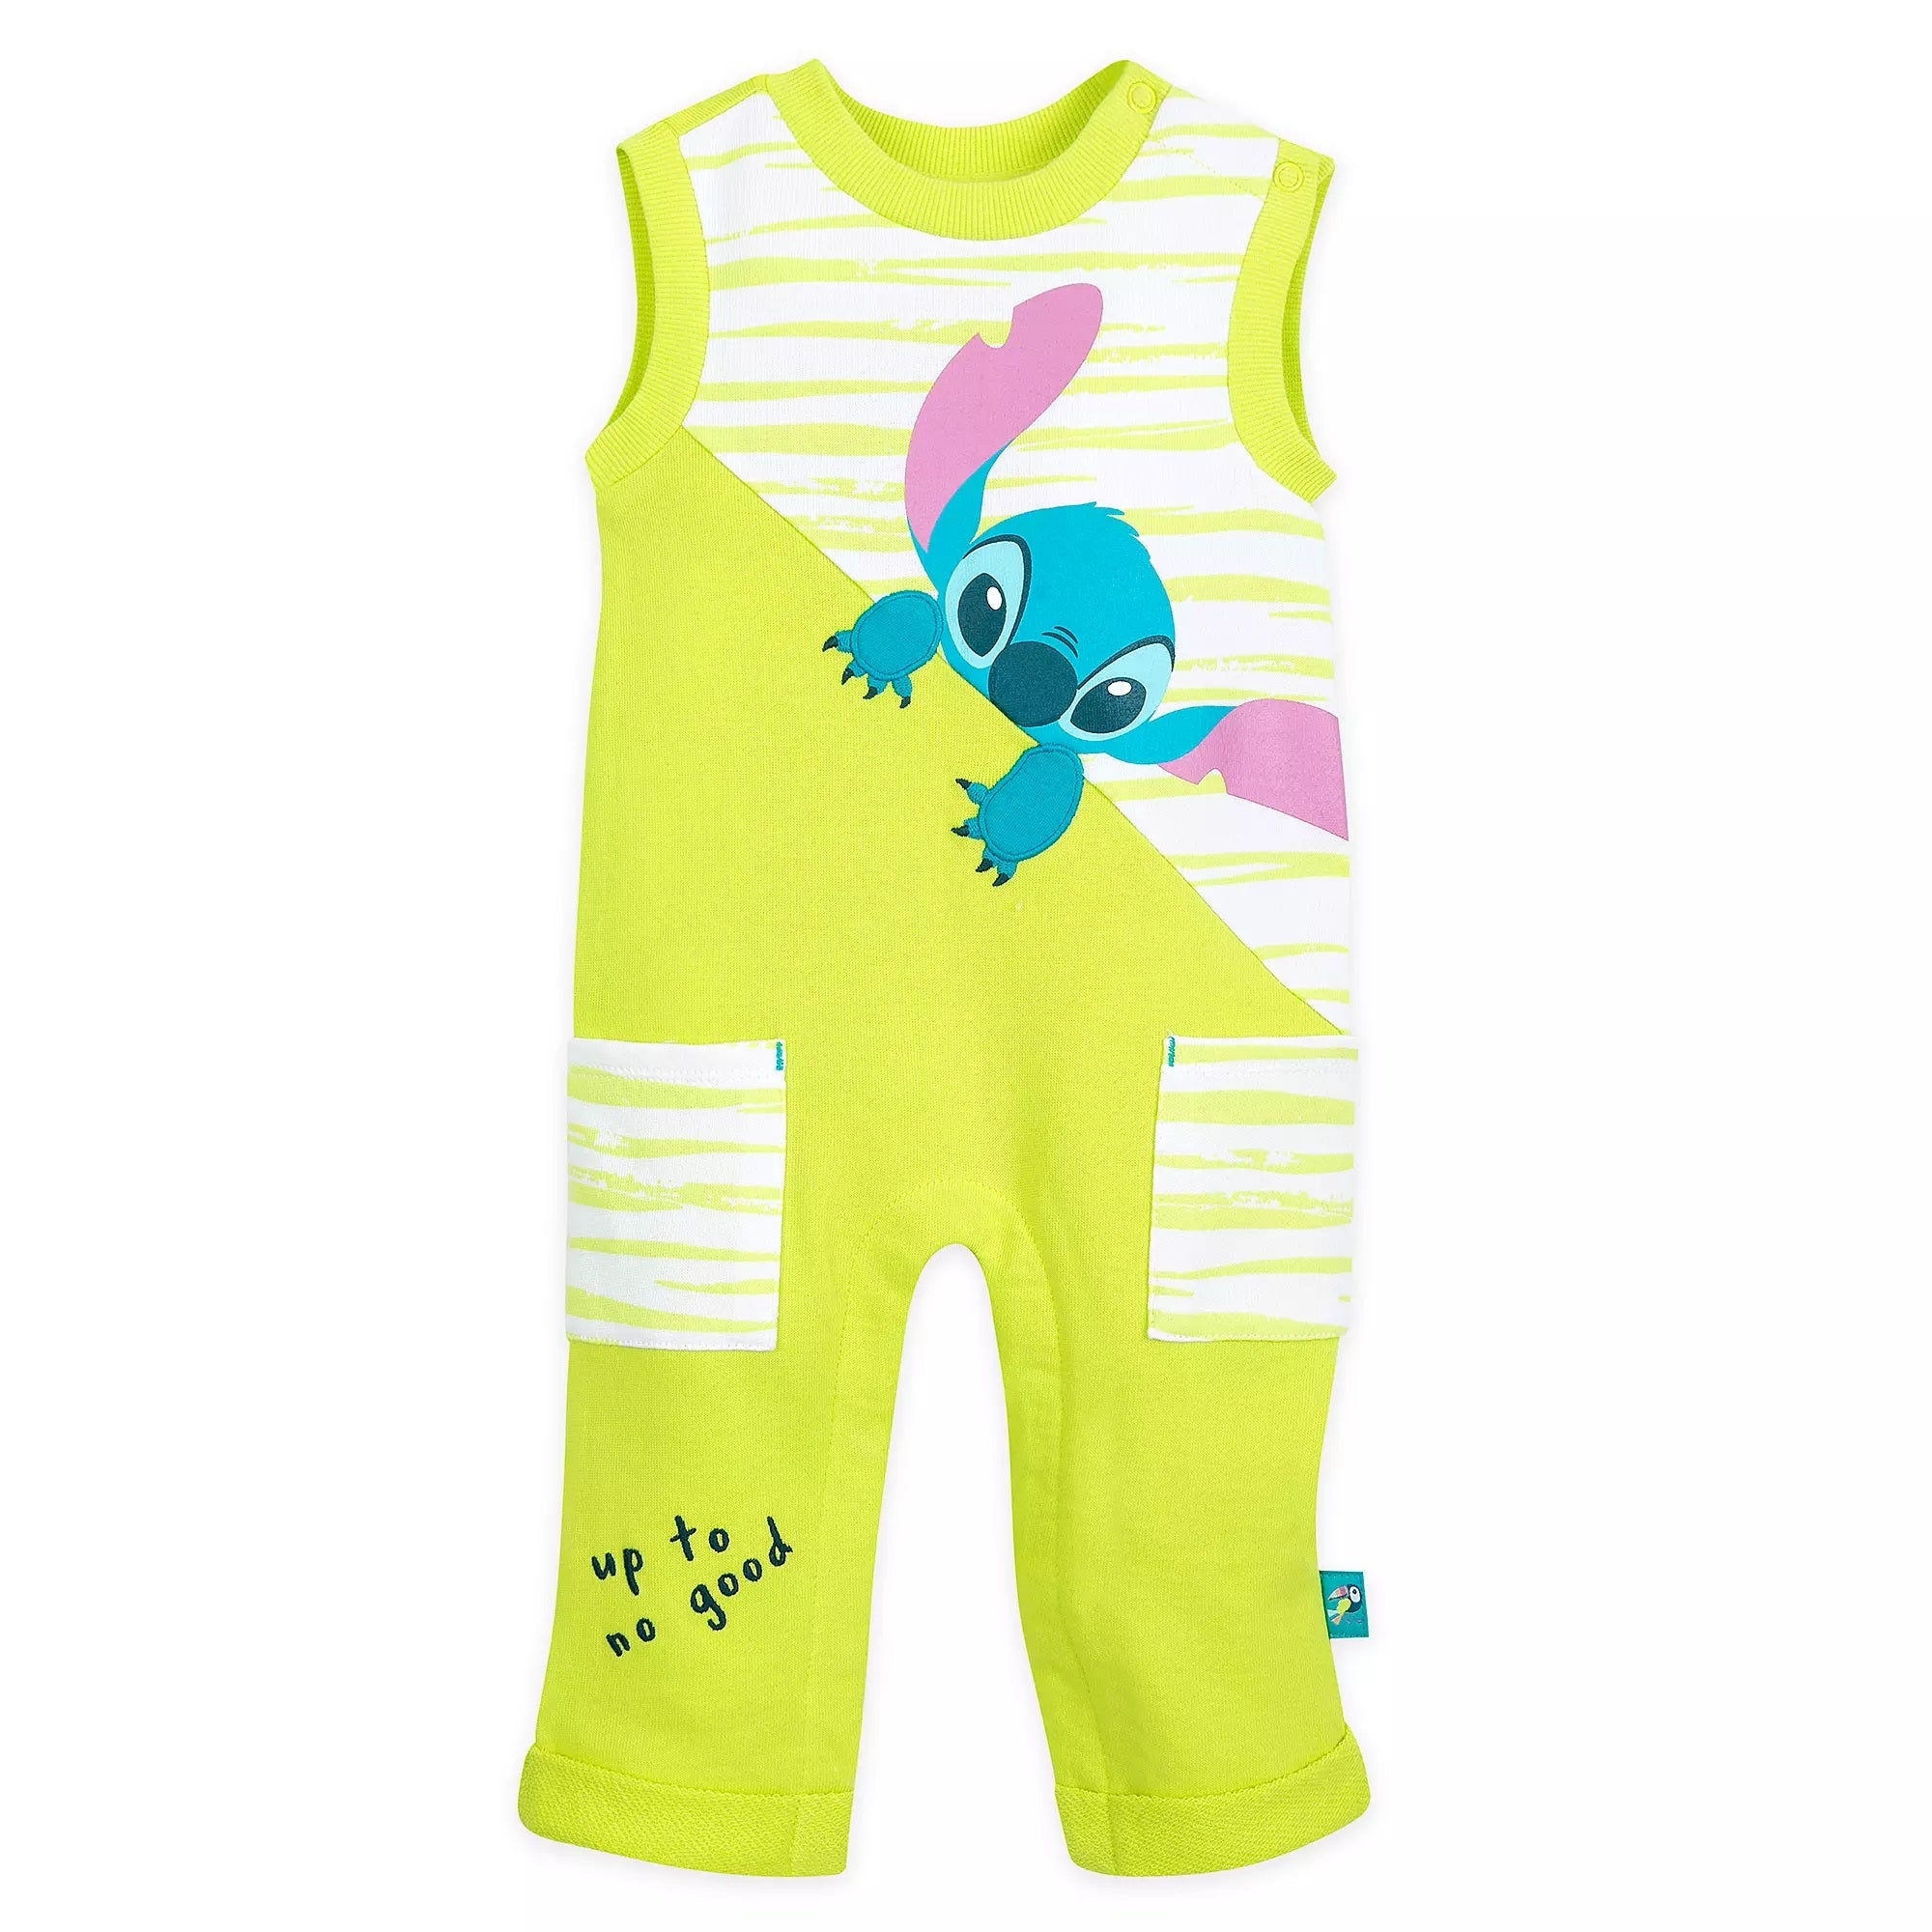 Stitch Sleeveless Romper for Baby